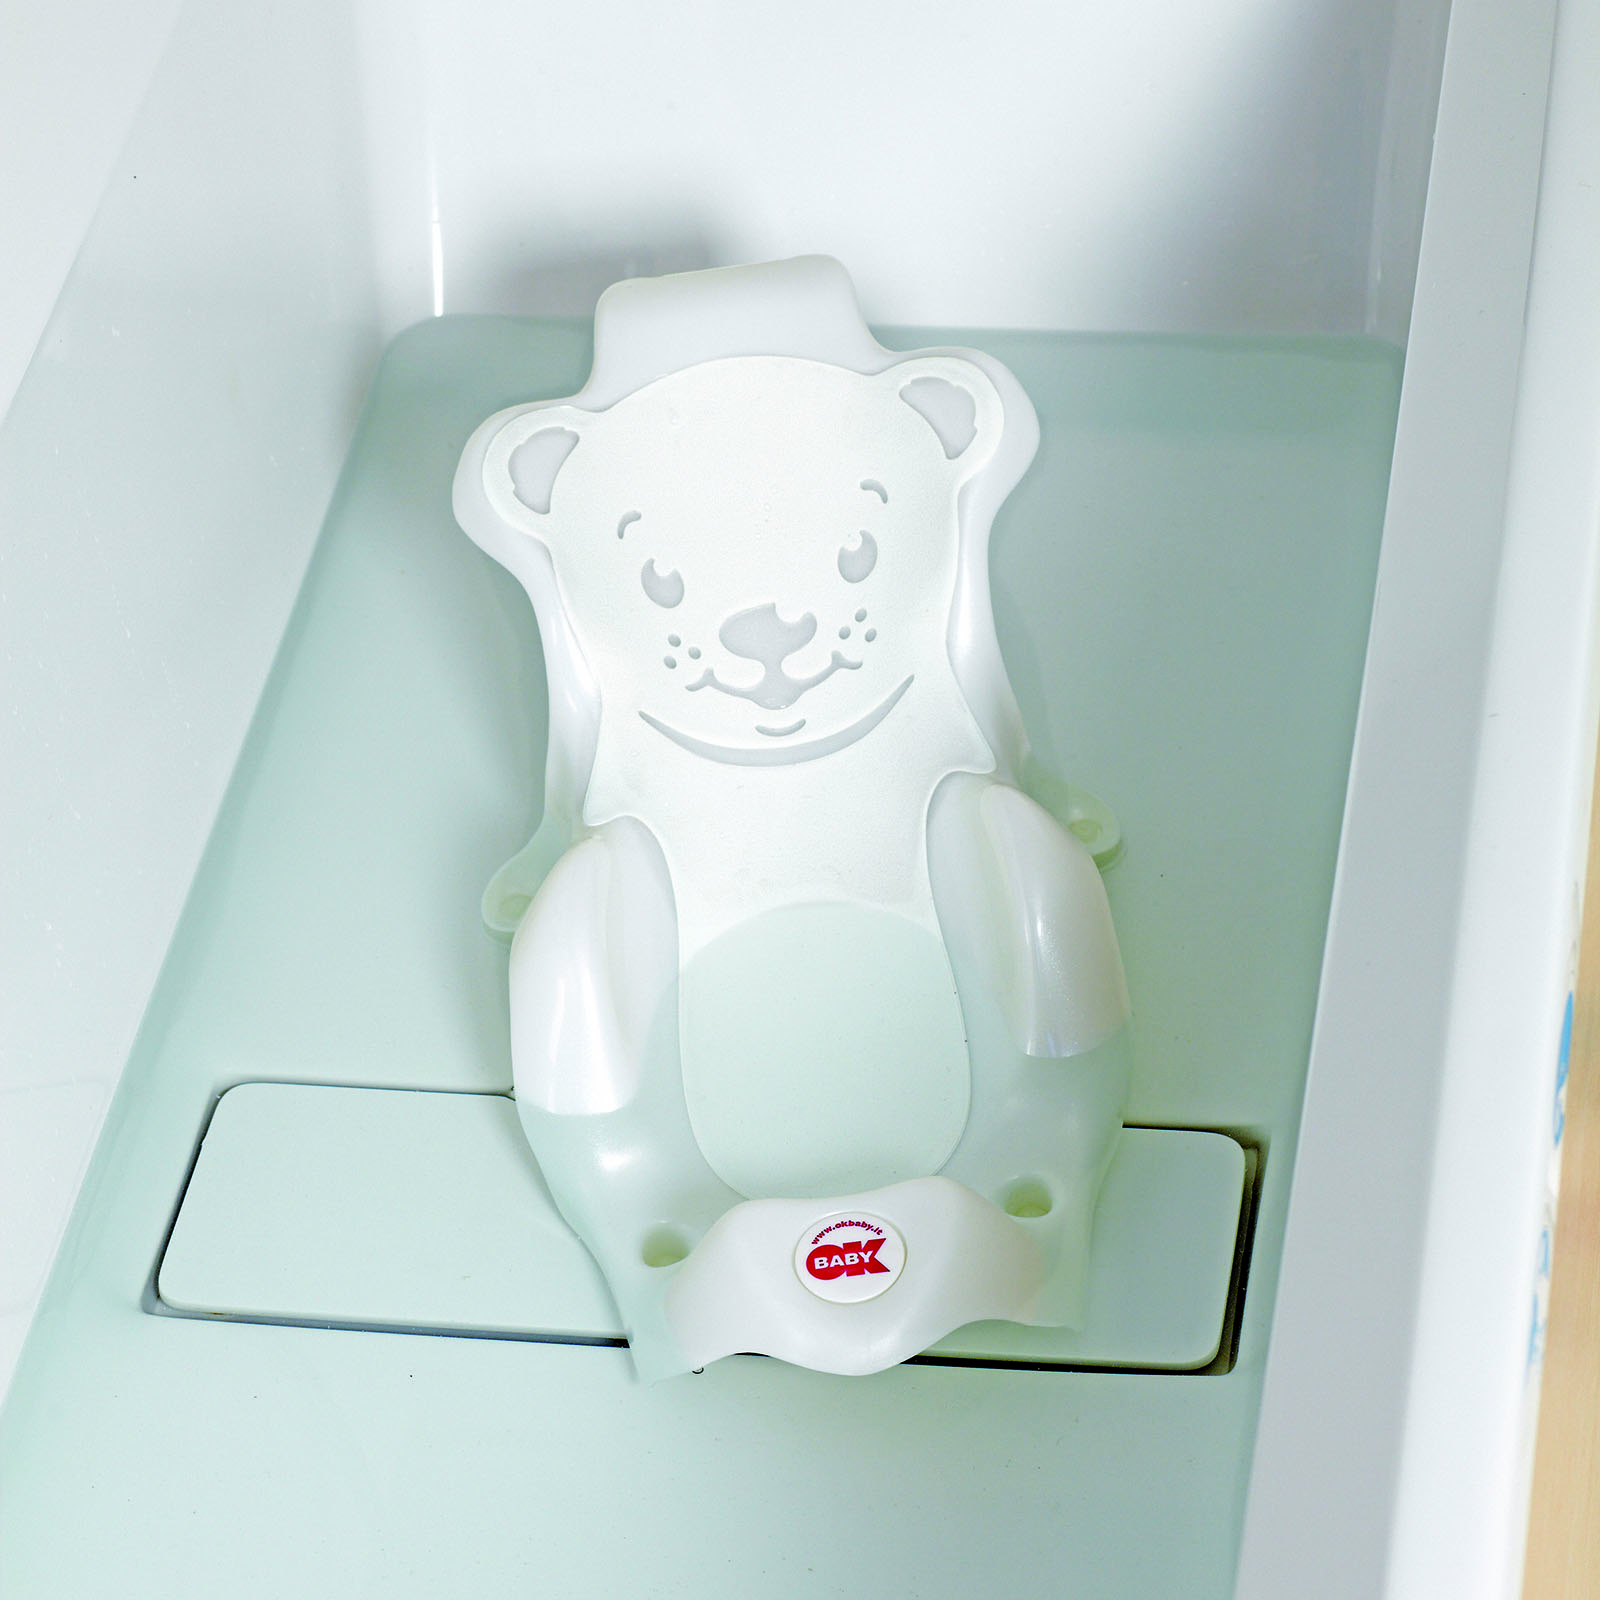 NEW OK BABY BUDDY BATH SEAT WHITE FOR USE IN LAGUNA TUB OR ADULT ...